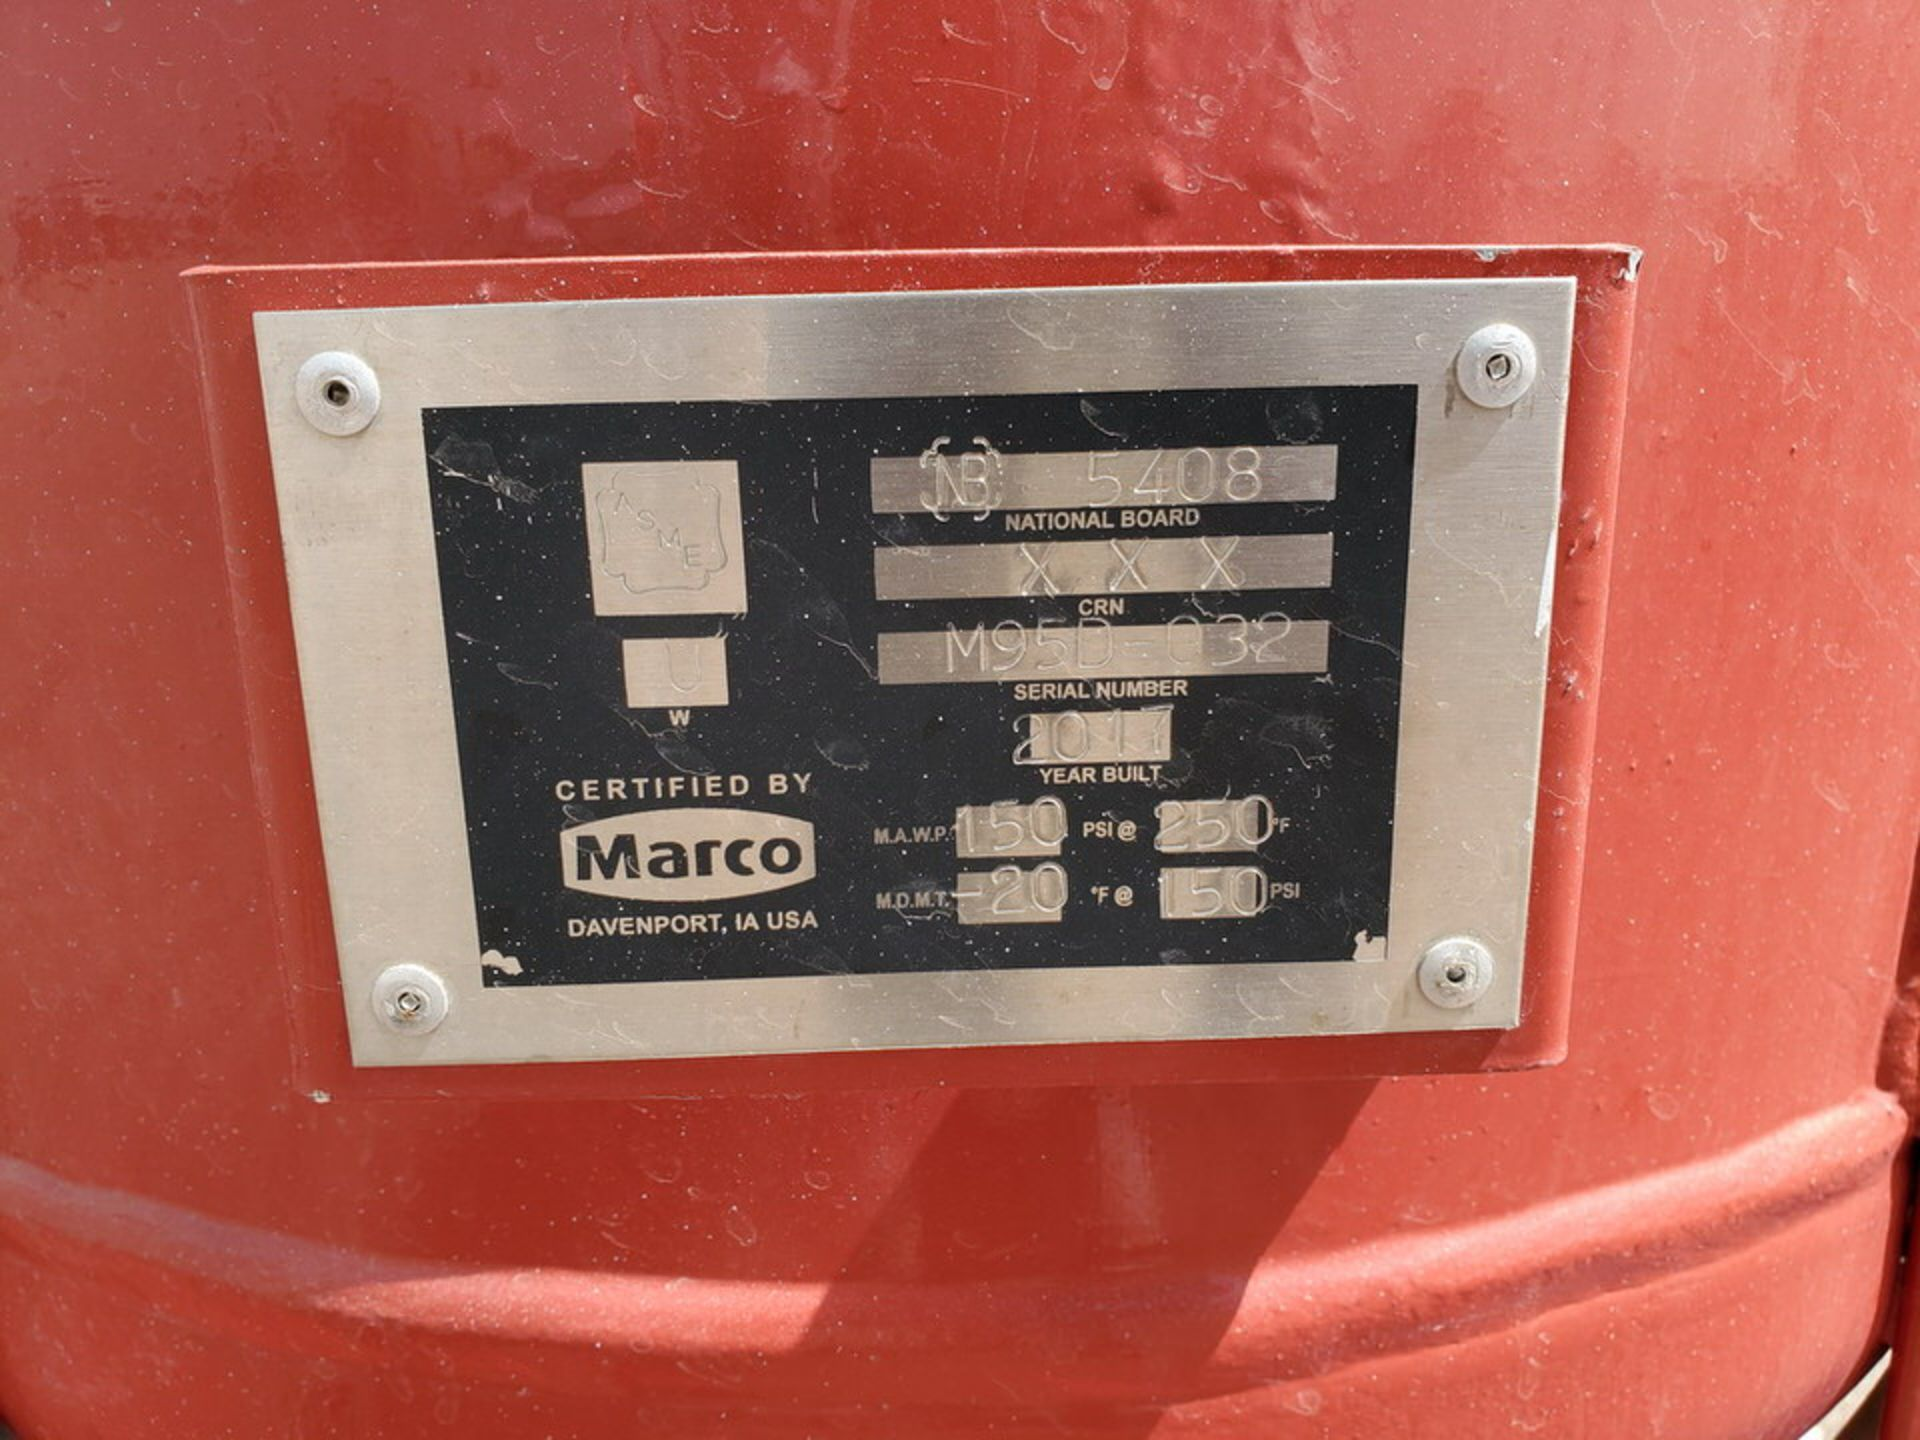 """2017 Marco Air Dryer 150psi@250F, -20@150psi, Vessel Dims: 30"""" Seam To Seam; Overall Dims: 72"""" x 35"""" - Image 11 of 11"""